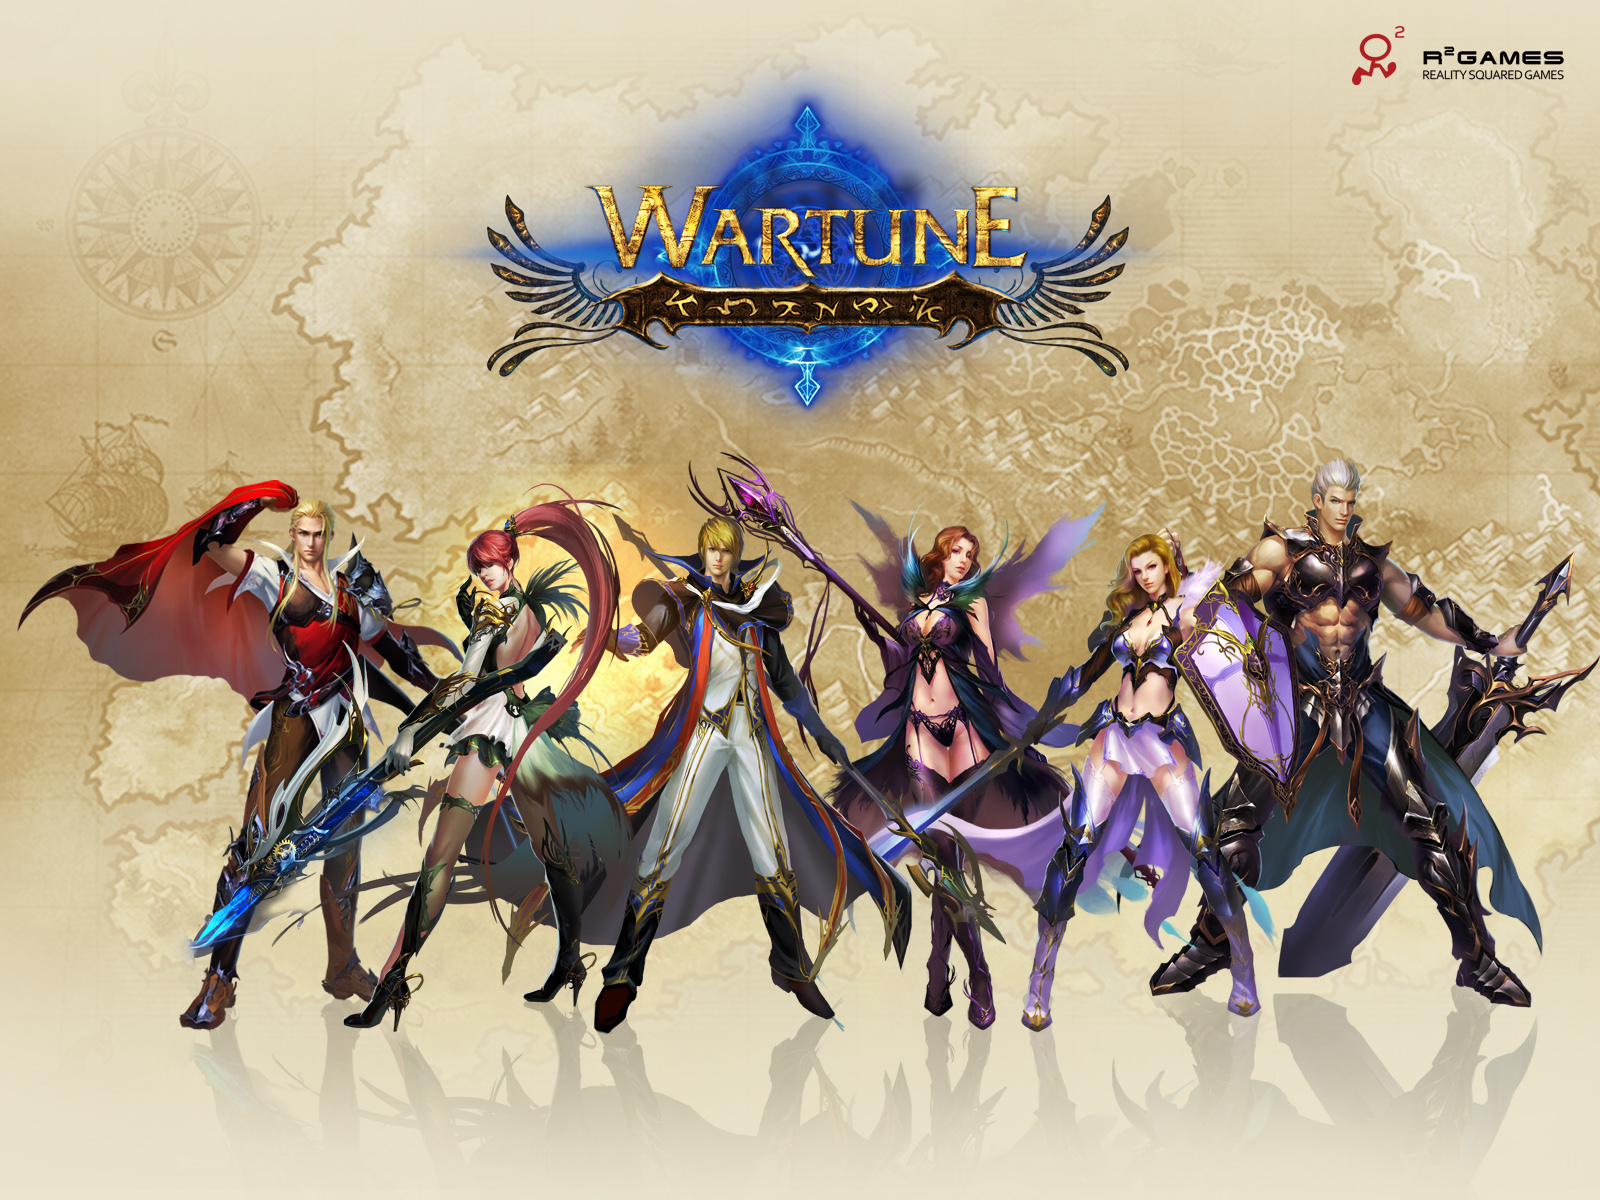 Wartune Hack Seed Use Cheat Engine 6.1